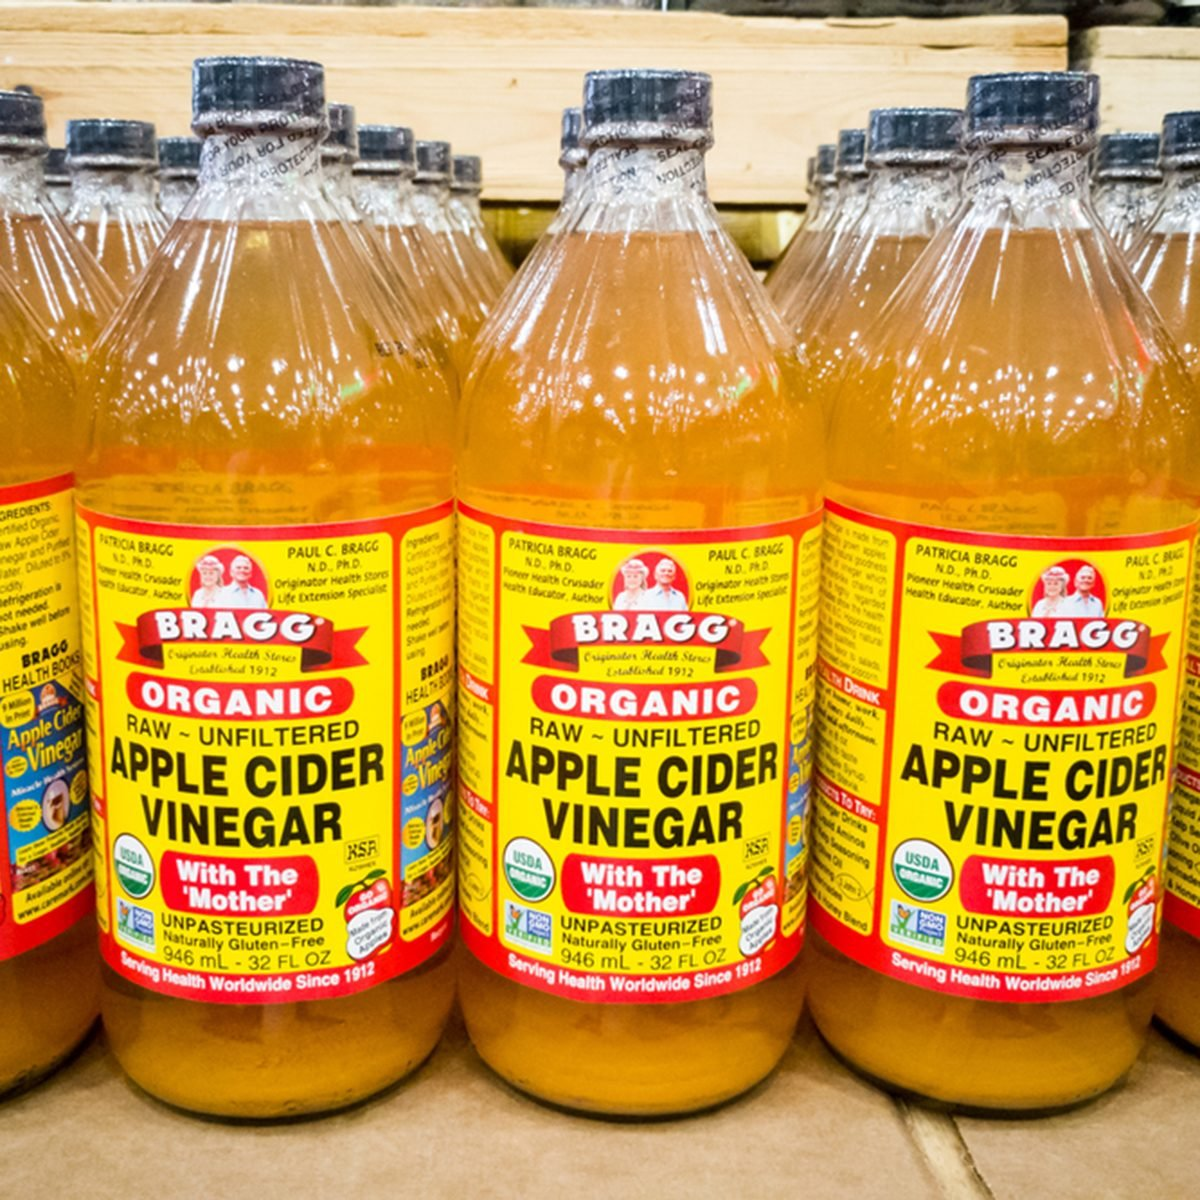 10 Unexpected Ways to Use Apple Cider Vinegar Around the House